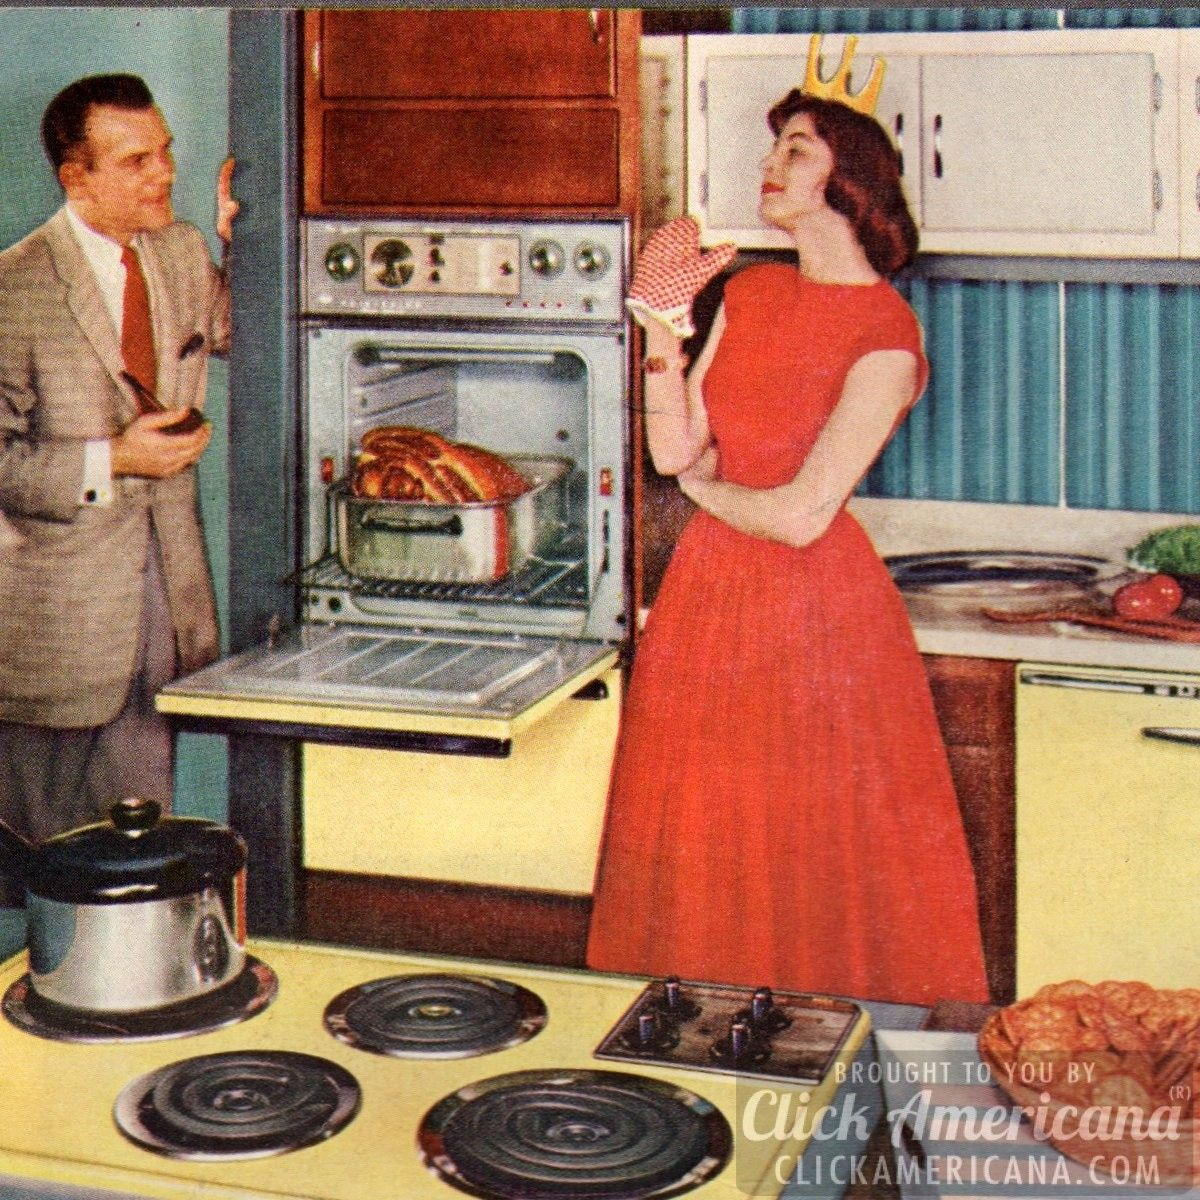 How to be a perfect 39 50s housewife in the kitchen for Classic housewife